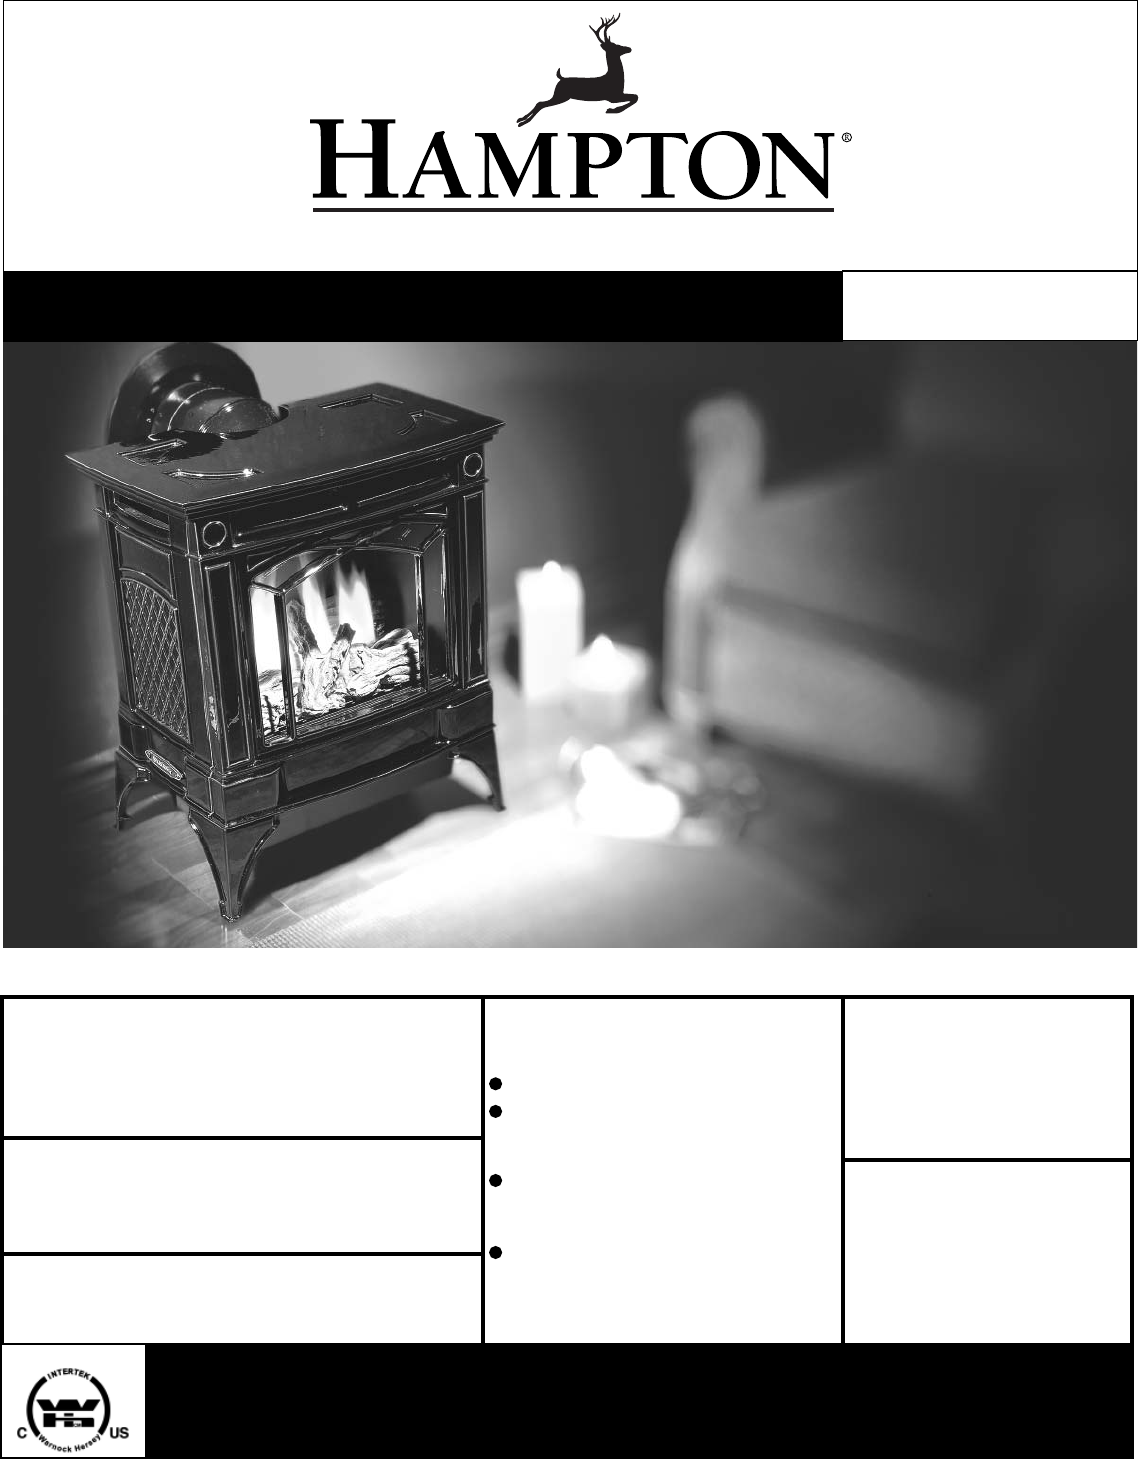 Hampton Direct Indoor Fireplace H25 Lp1 Propane User Guide